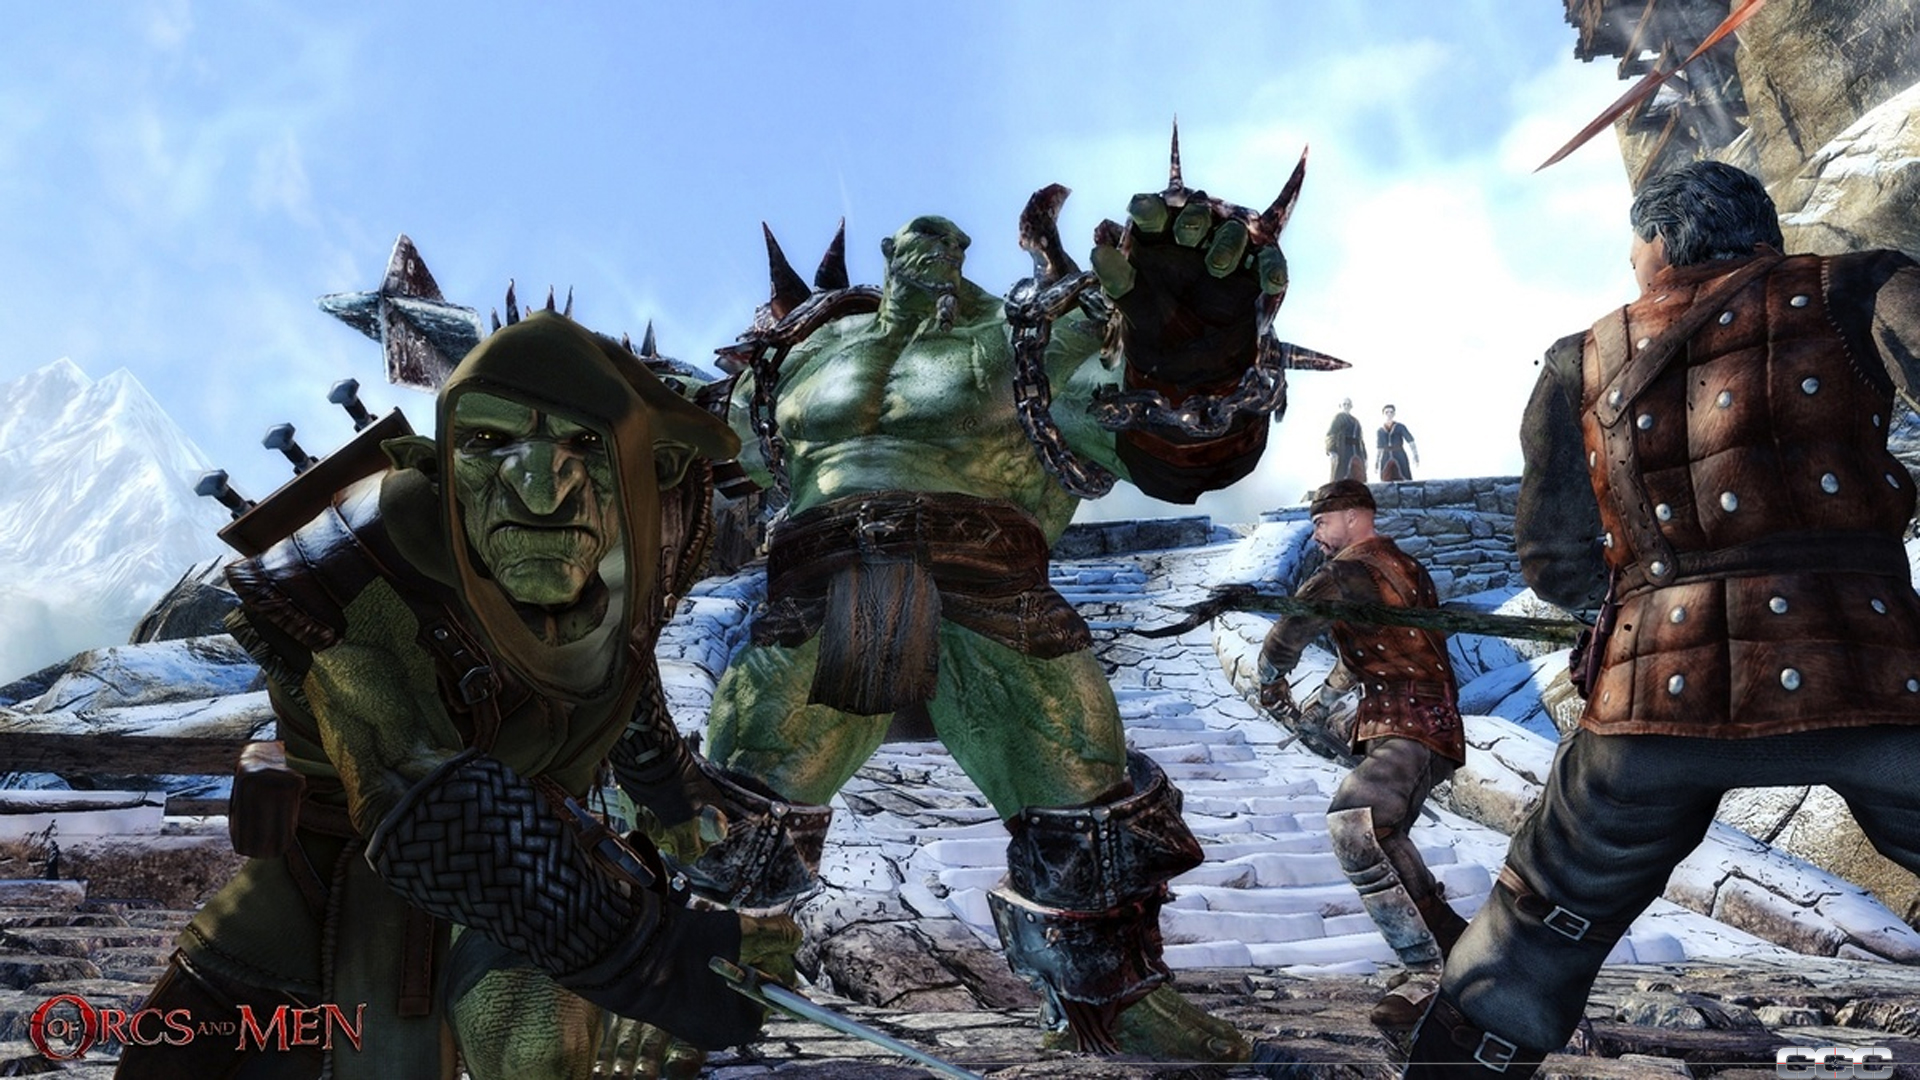 Of Orcs and Men image